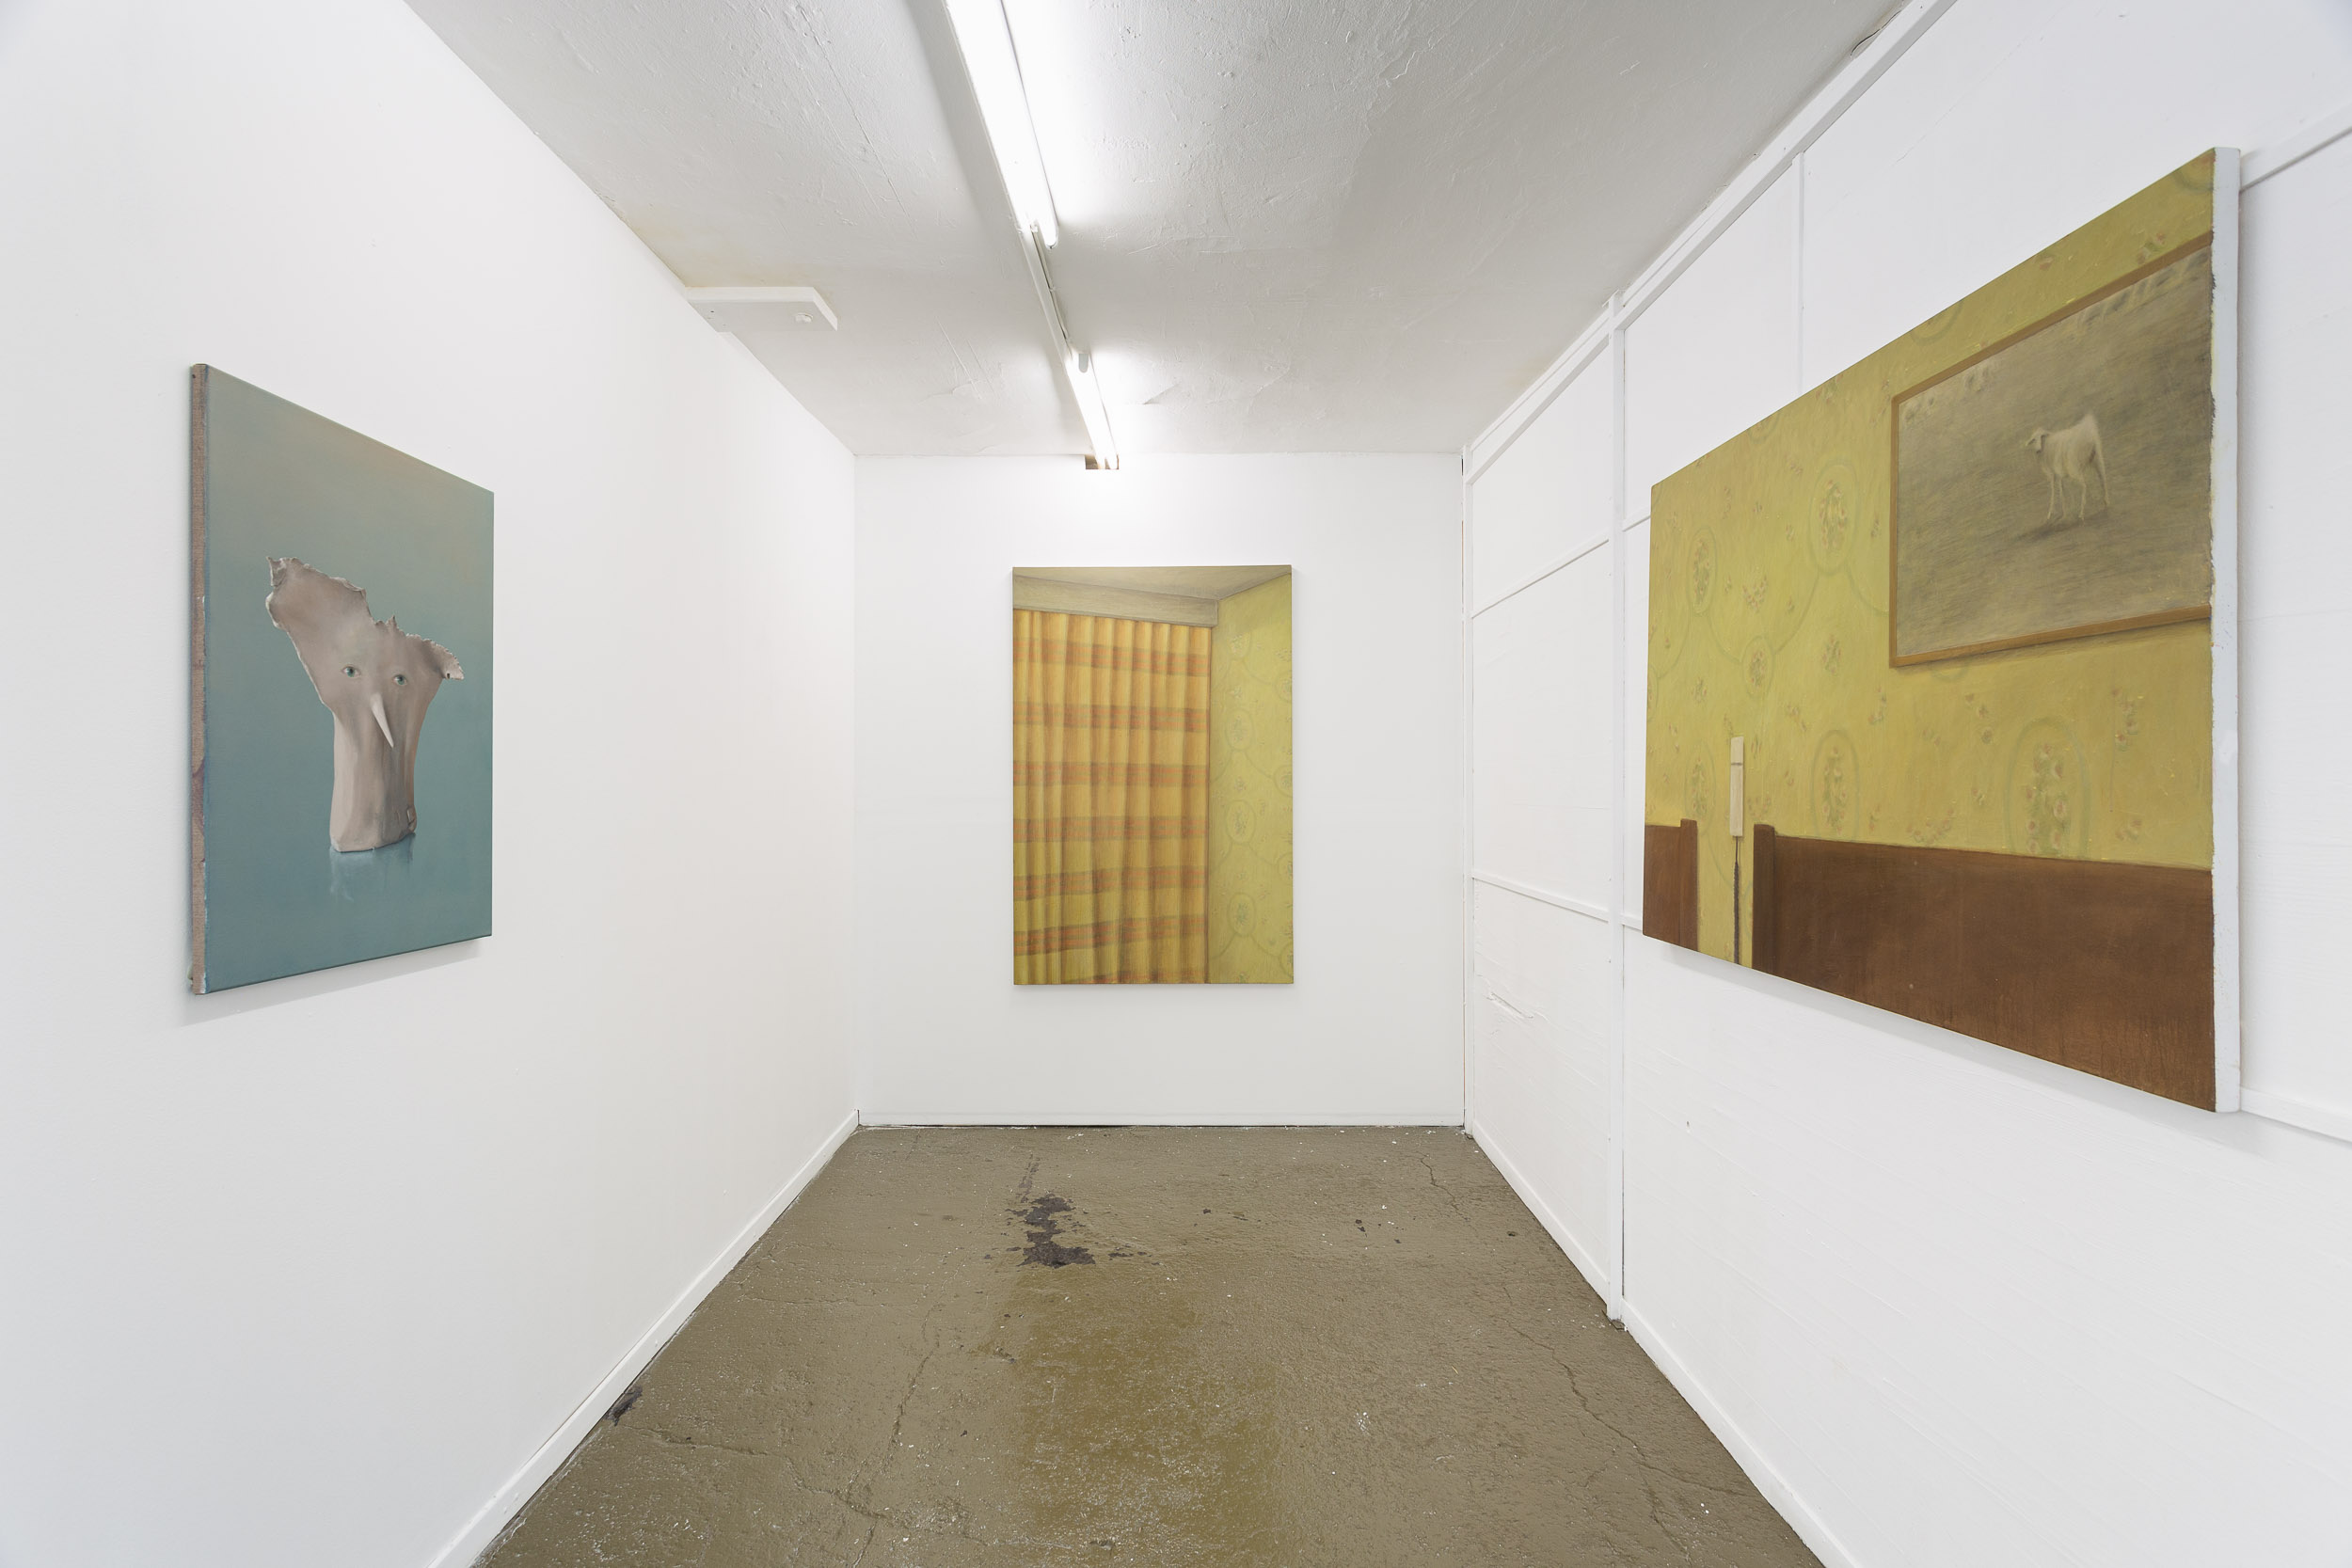 New (Object) Order, Installation view Photo by Kilian Bannwart